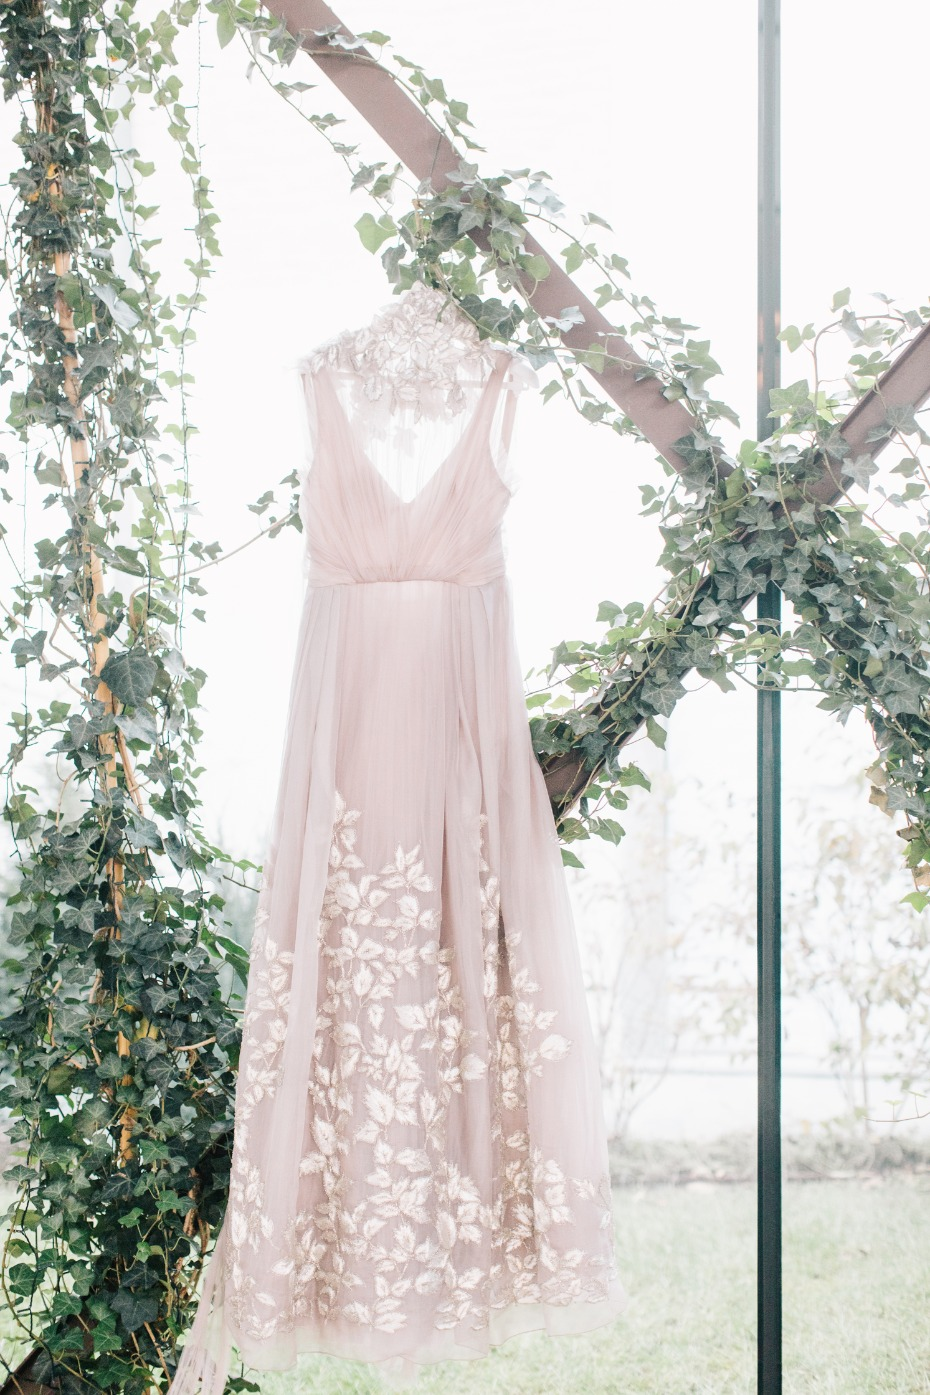 Blush floral appliqué wedding dress